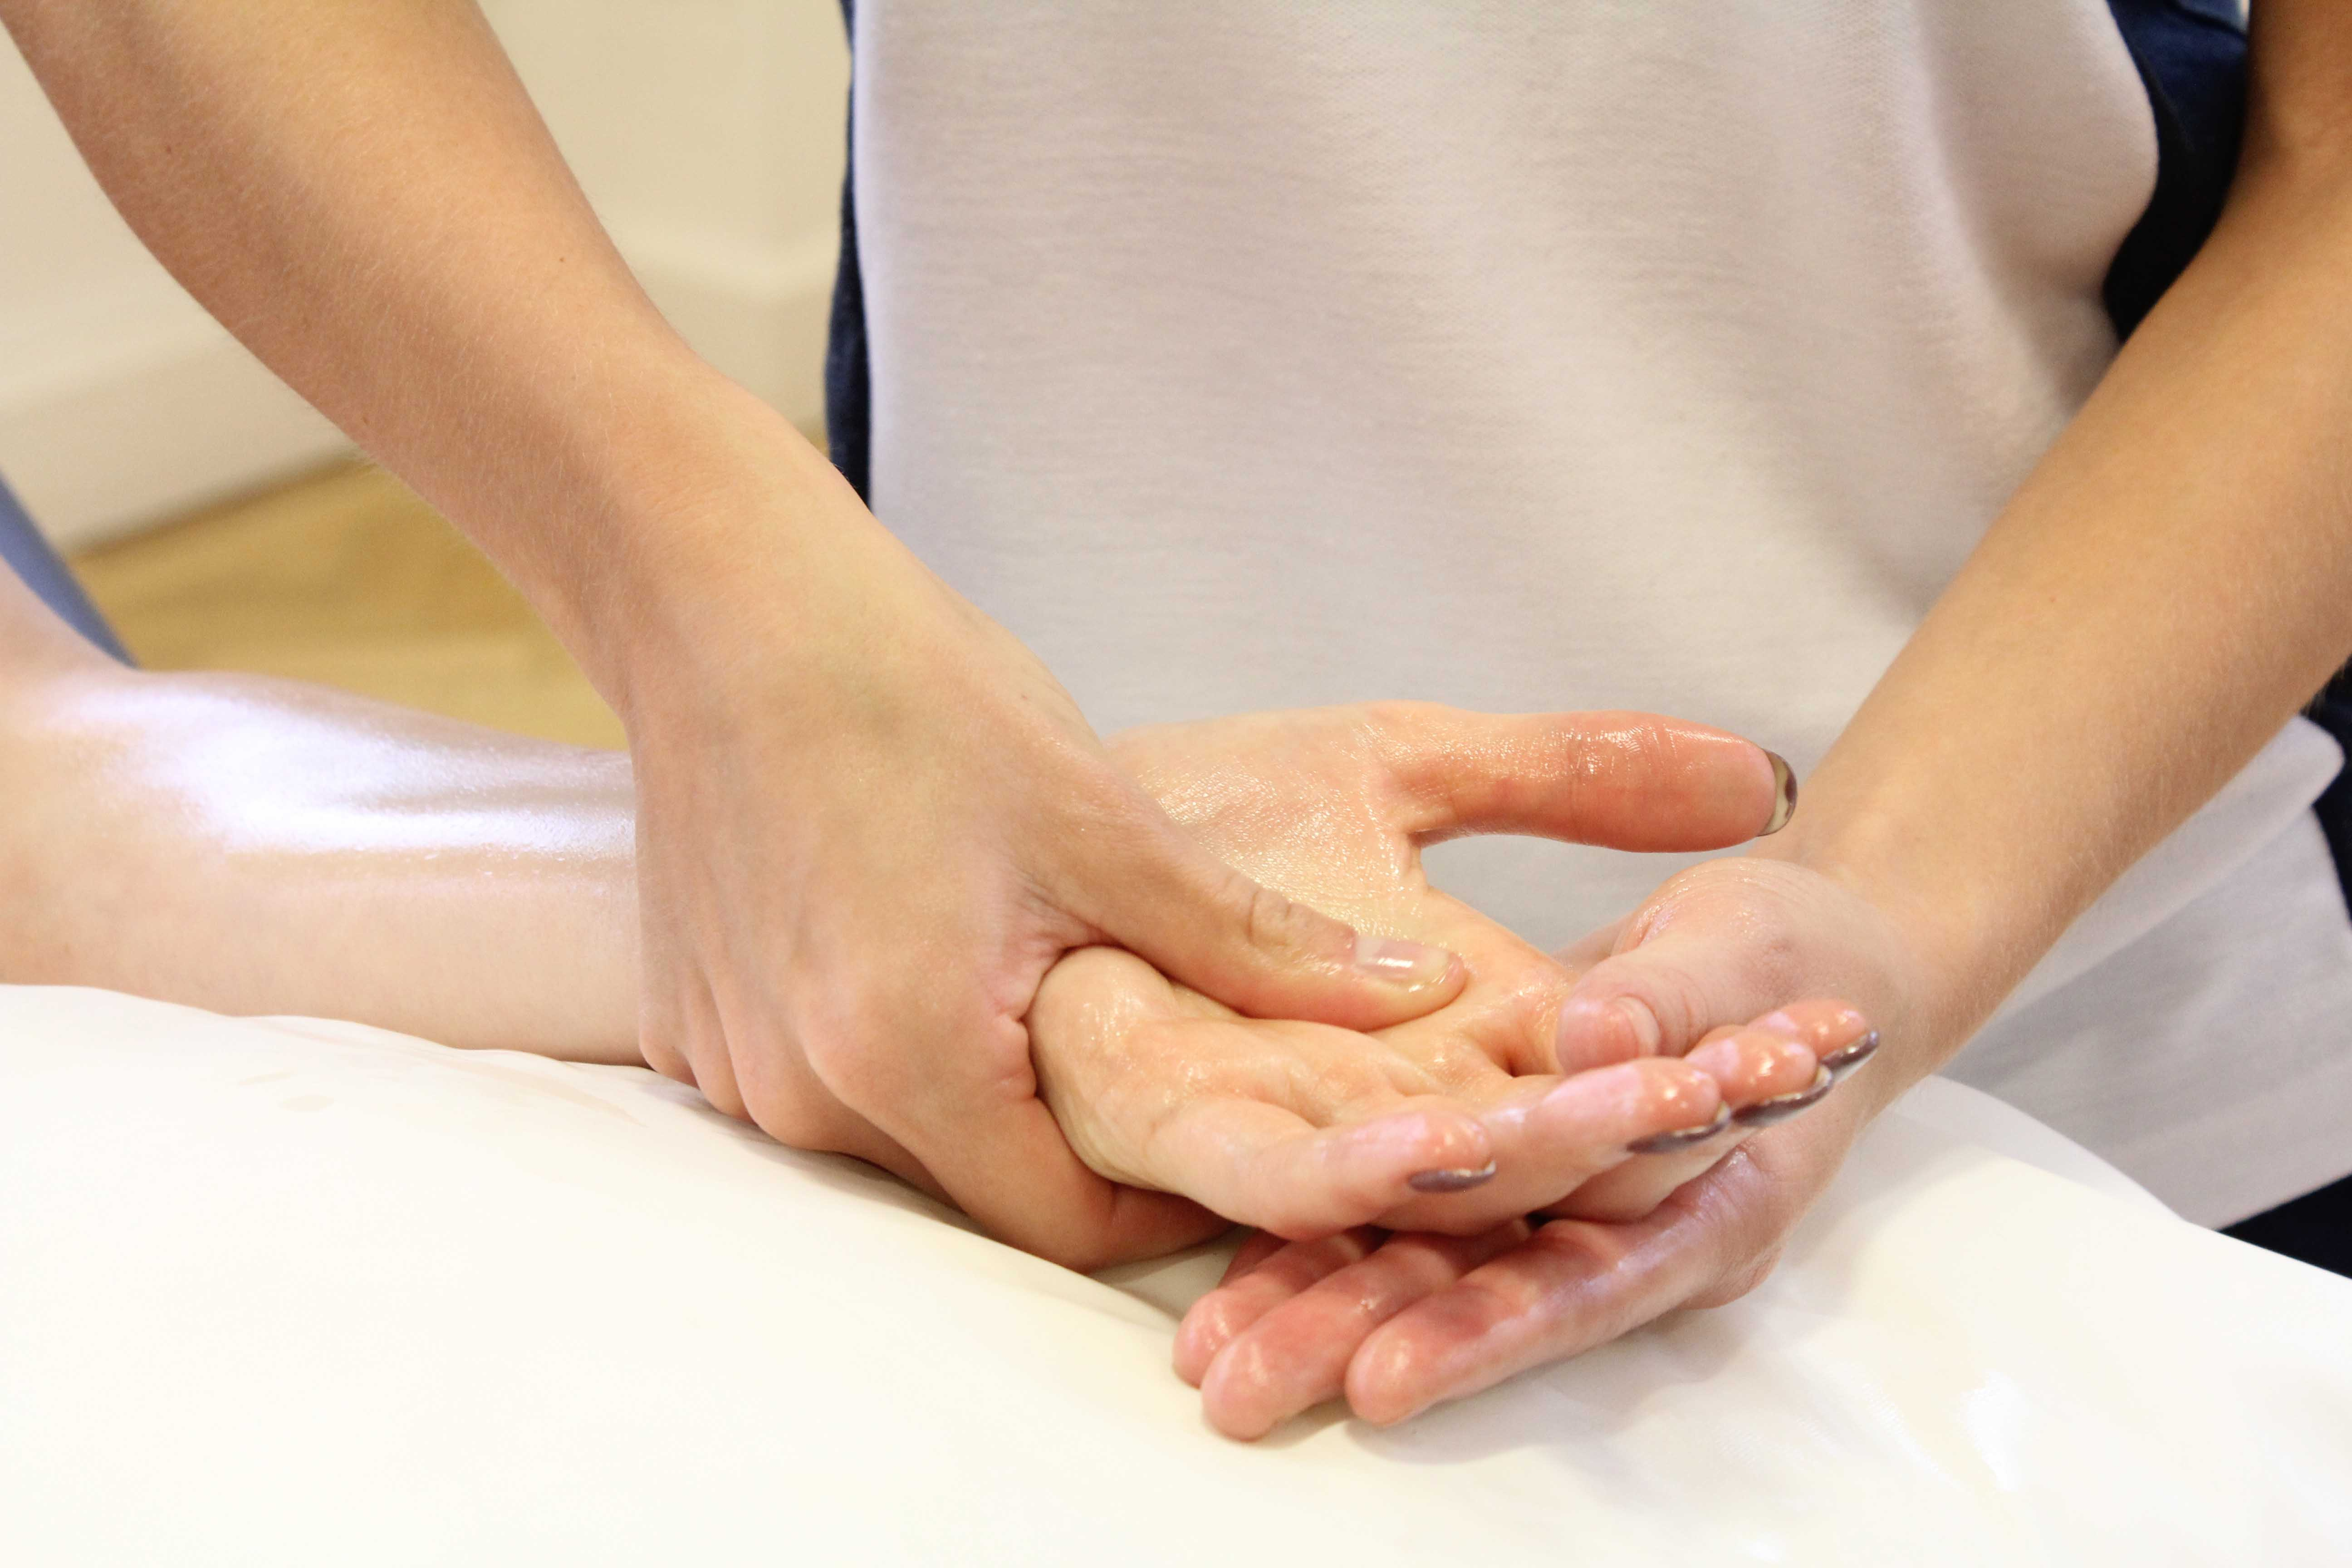 Therapist soft tissue massage of the metacarpals and connective tissues in the hand